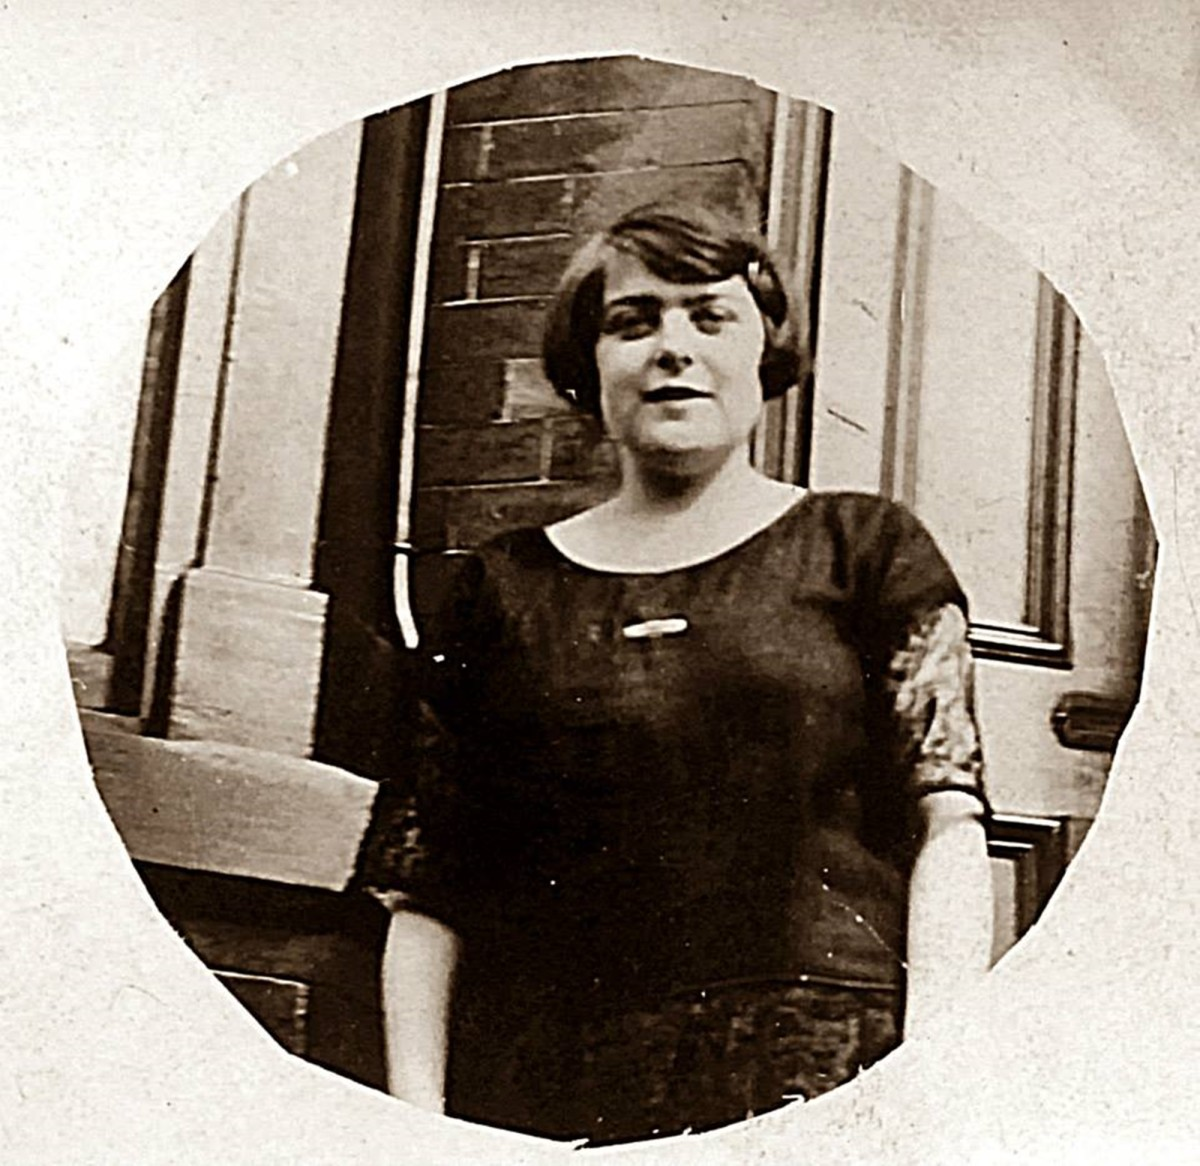 My grandma, Ivy Trigg, as a young woman